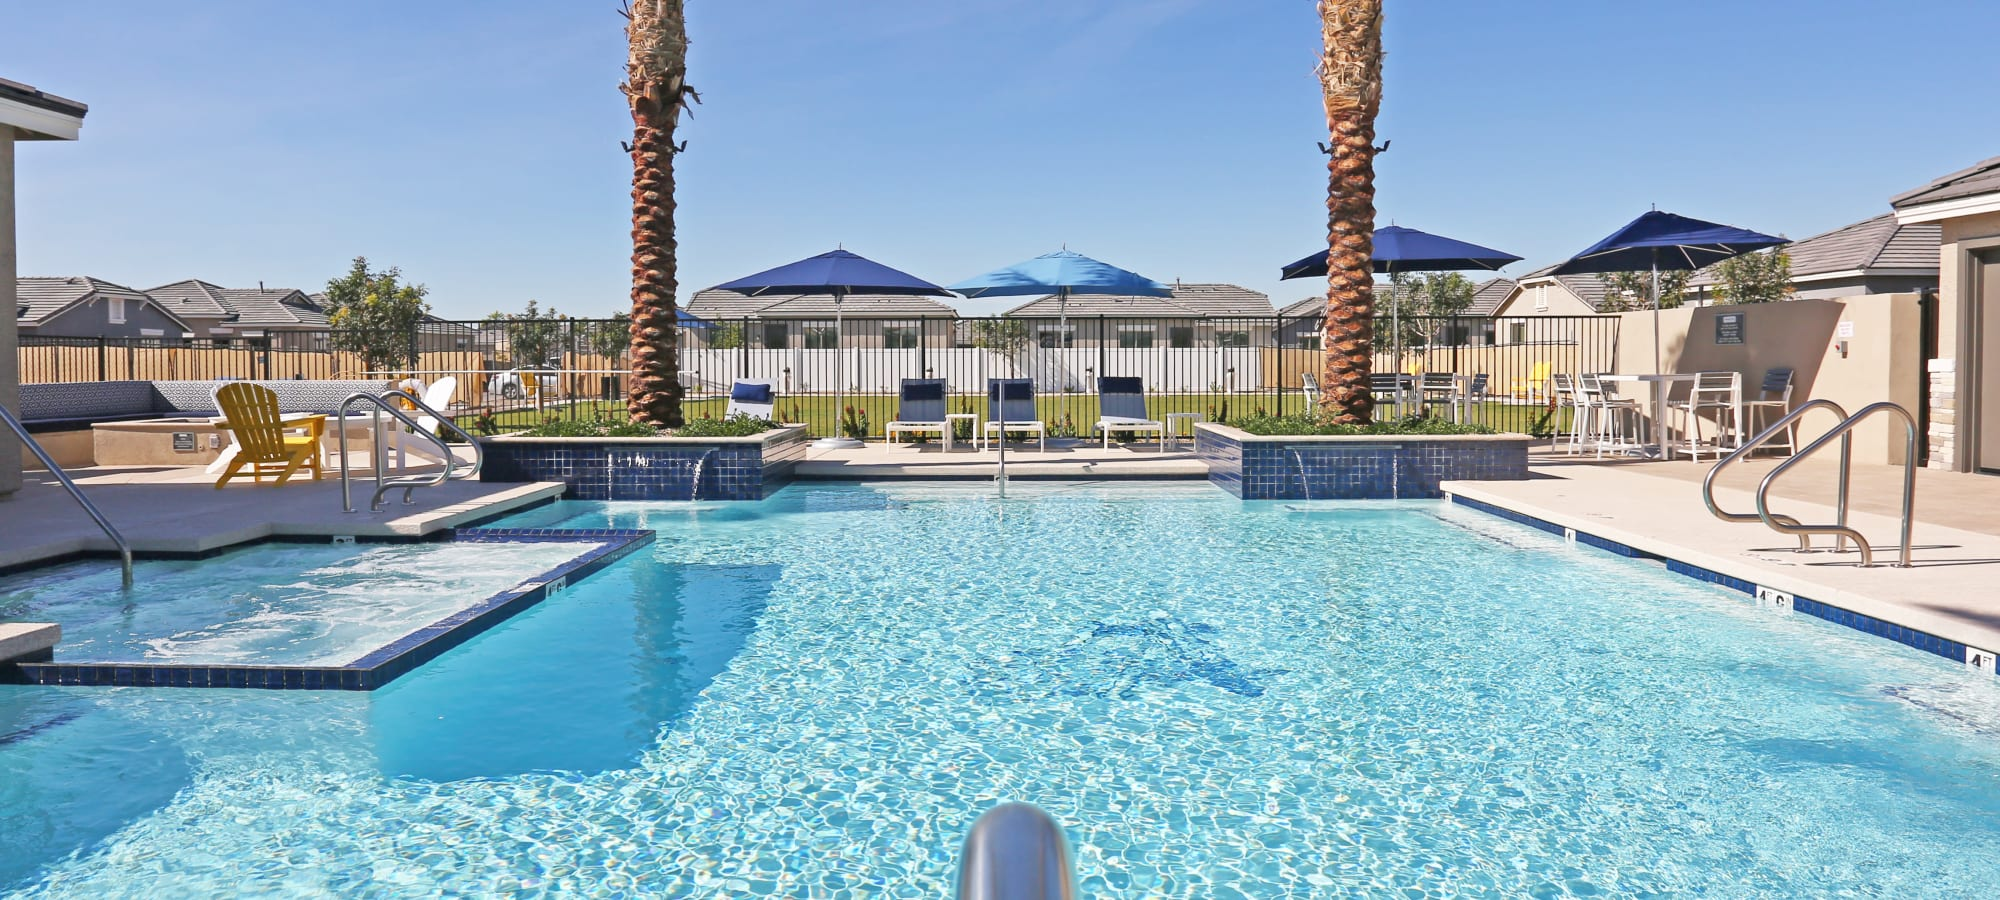 Swimming pool on another beautiful day at Christopher Todd Communities At Estrella Commons in Goodyear, Arizona